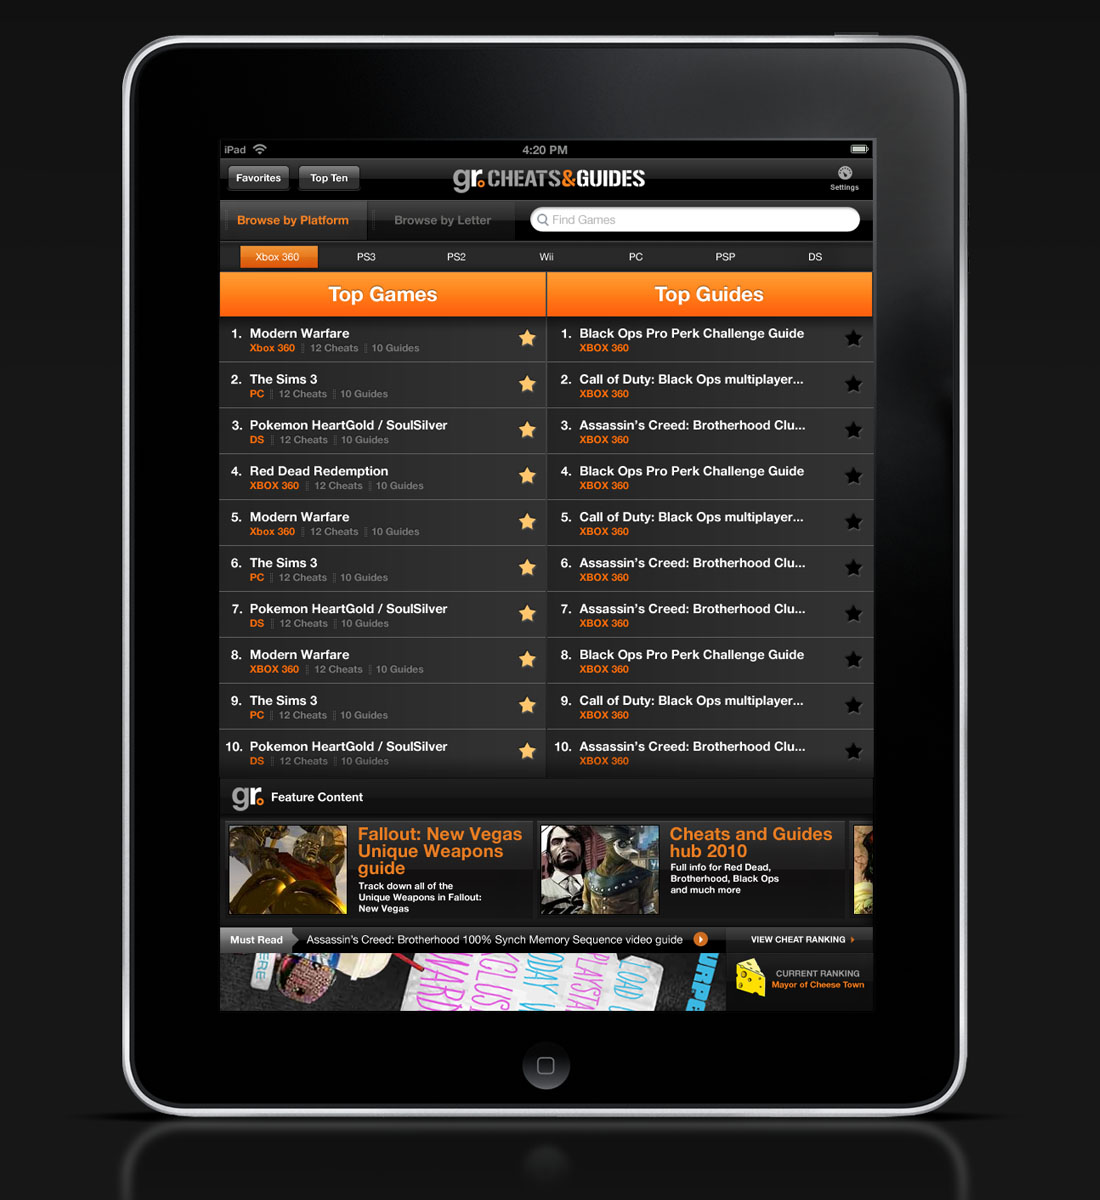 Ithira Design – GamesRadar Cheats & Guides iPad App